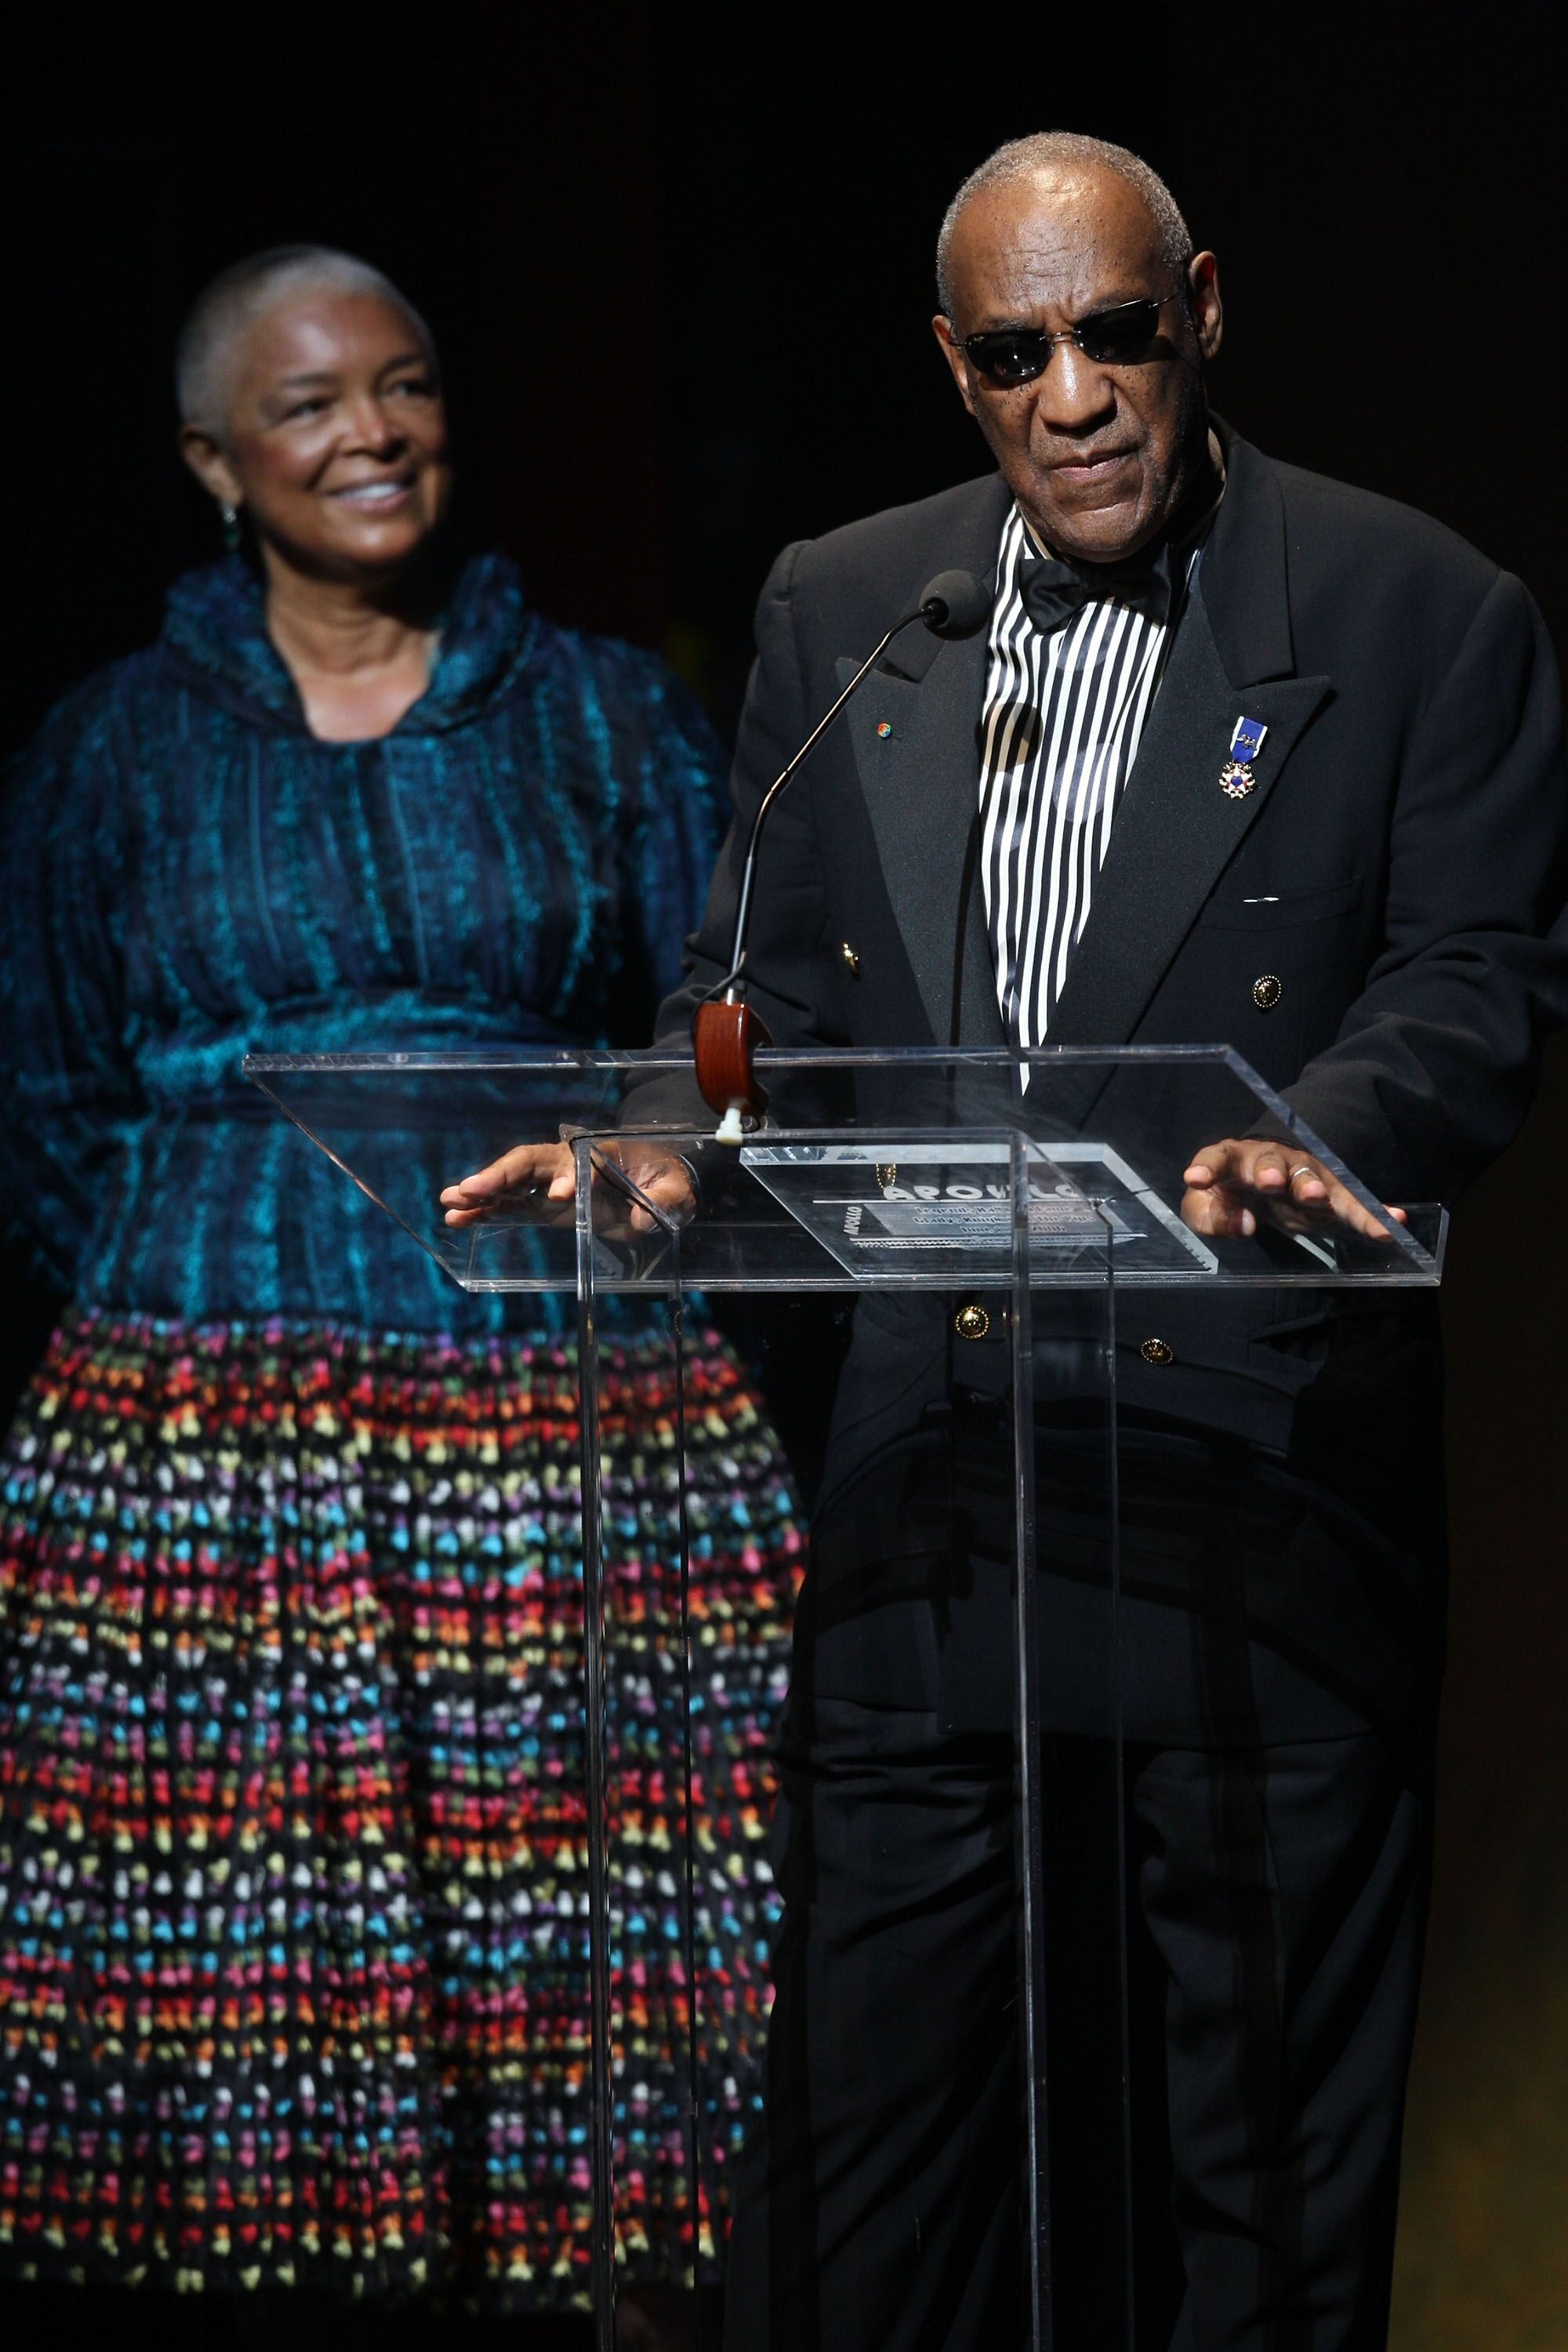 Bill Cosby giving a speech as wife Camille looks on | Source: Getty Images